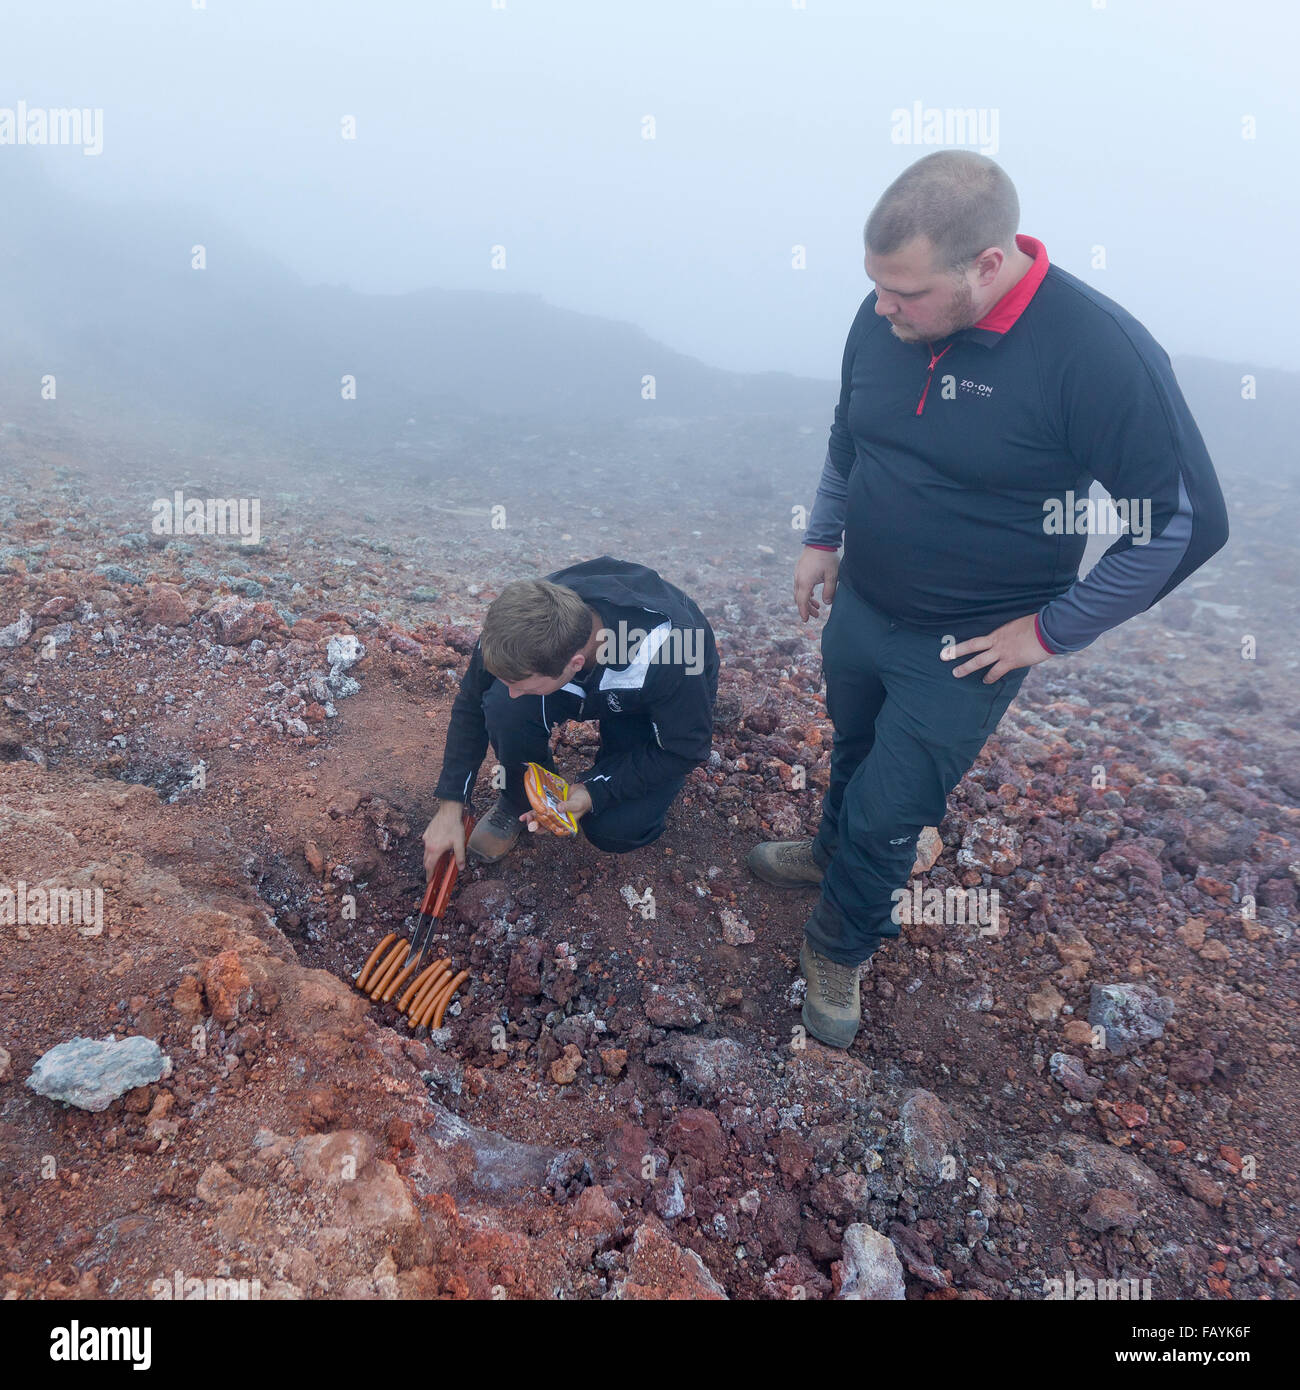 Cooking hot dogs in the steaming earth after Eyjafjallajokull Volcanic eruption,   Fimmvorduhals, Iceland - Stock Image